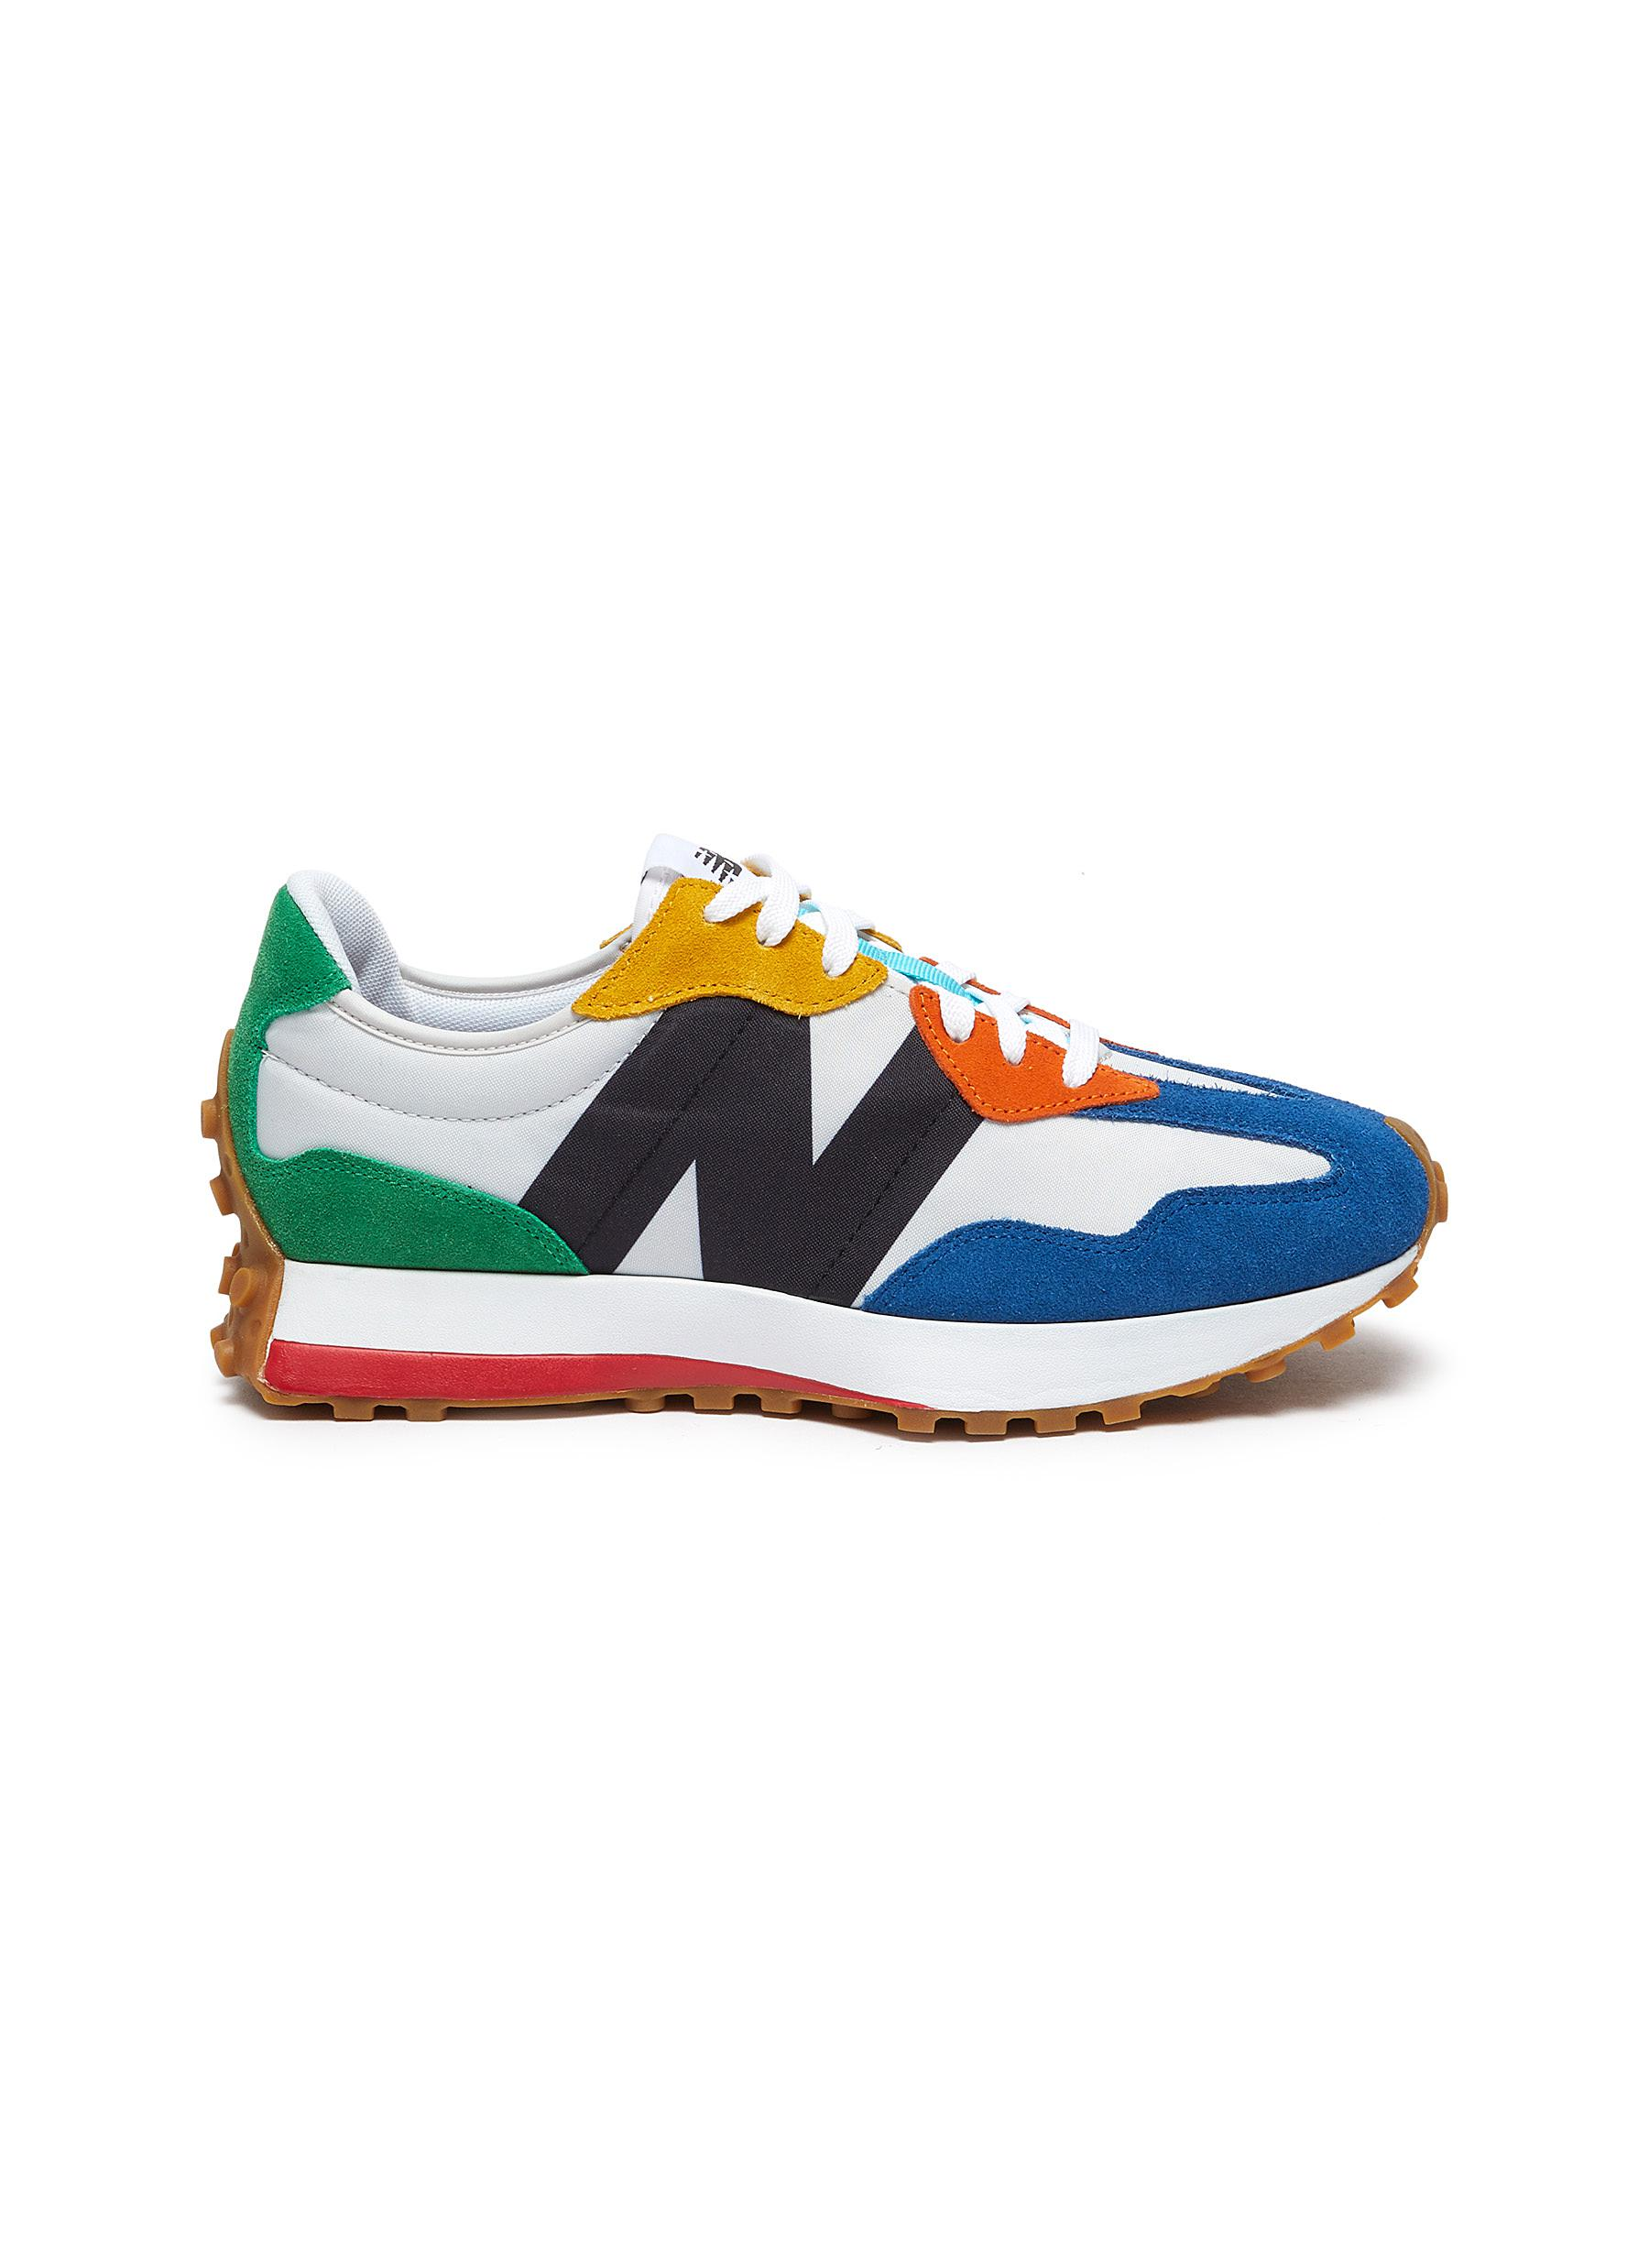 New Balance Suedes '327 PRIMARY BRIGHTS' LOW TOP SNEAKERS